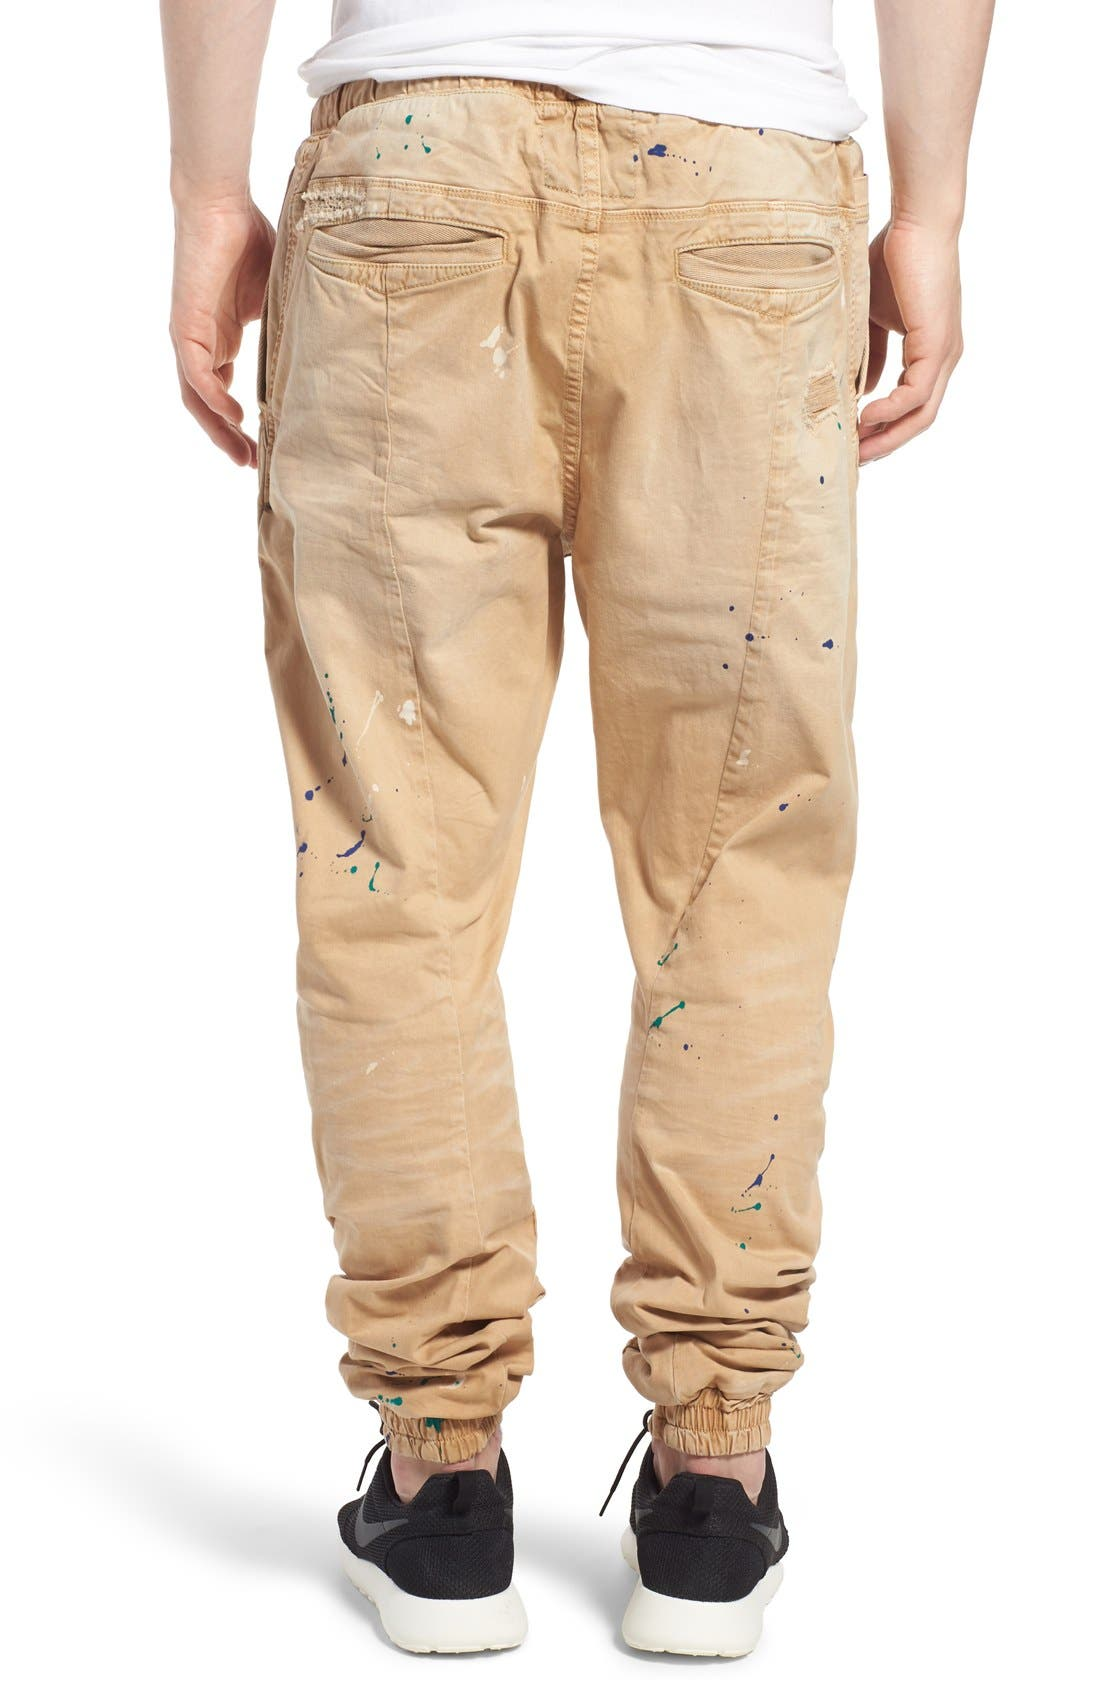 'Damiana' Splatter Paint Stretch Woven Jogger Pants,                             Alternate thumbnail 2, color,                             250